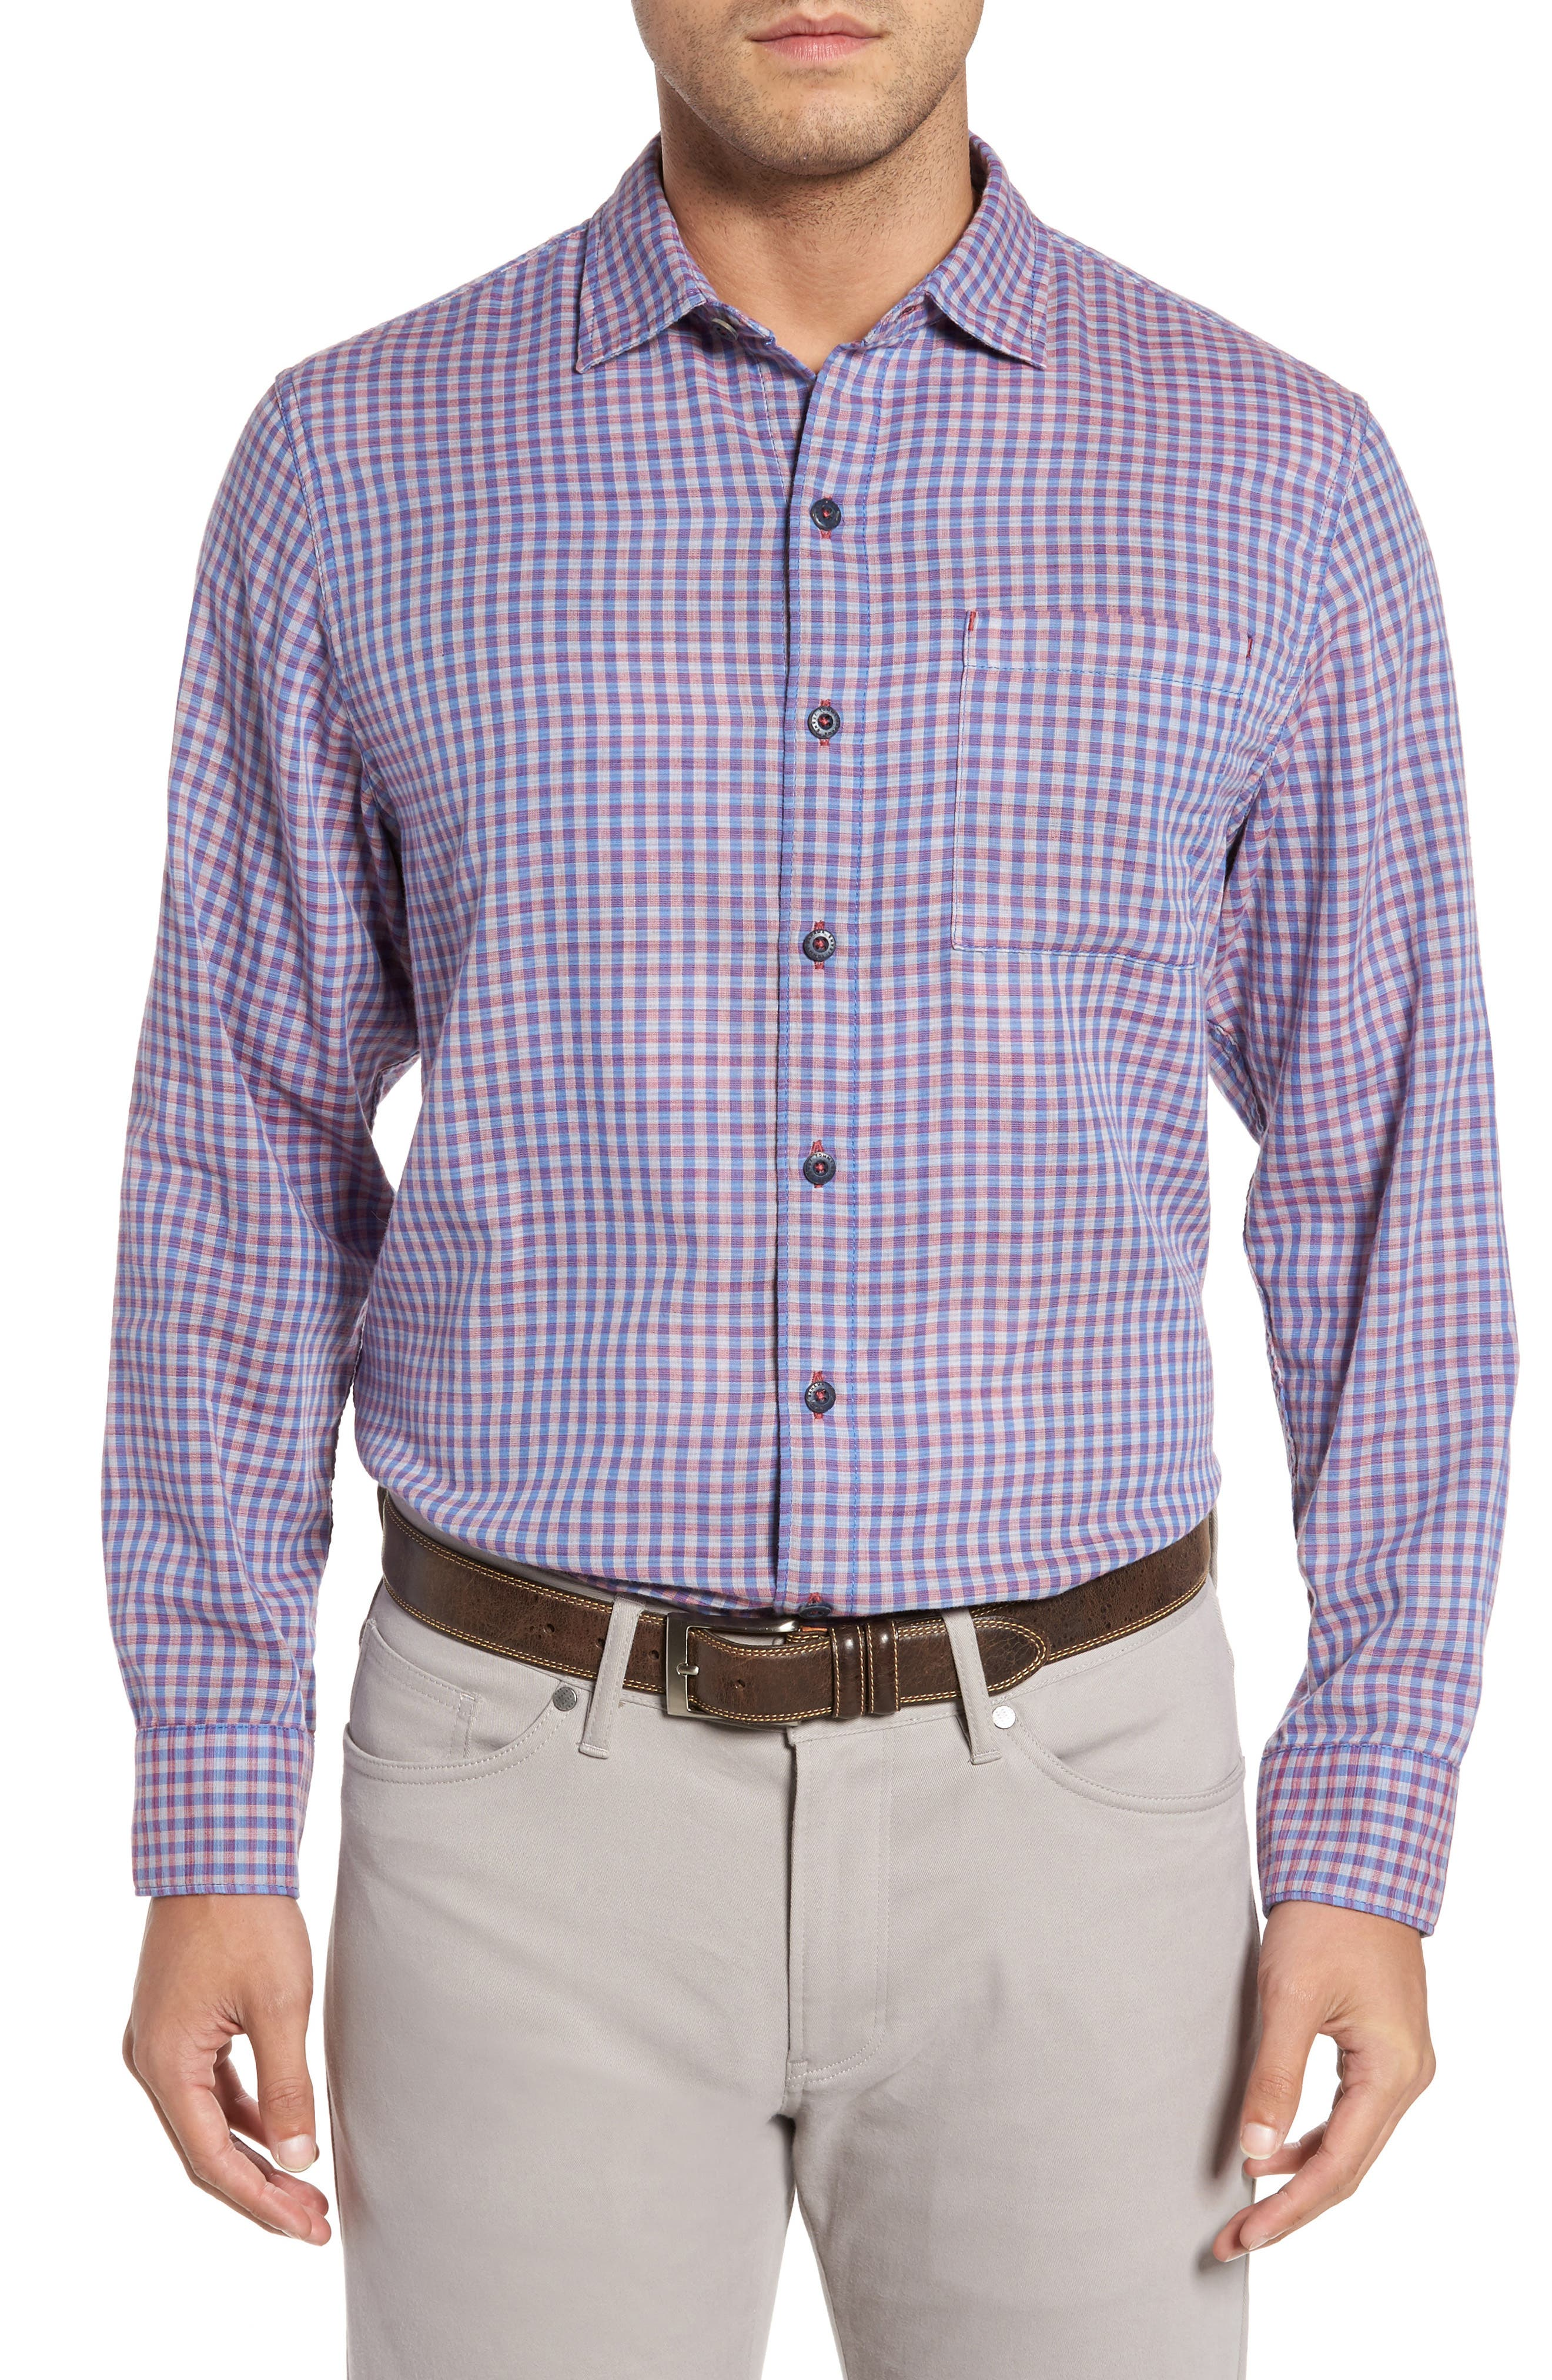 Alternate Image 1 Selected - Tommy Bahama Dual Lux Gingham Sport Shirt